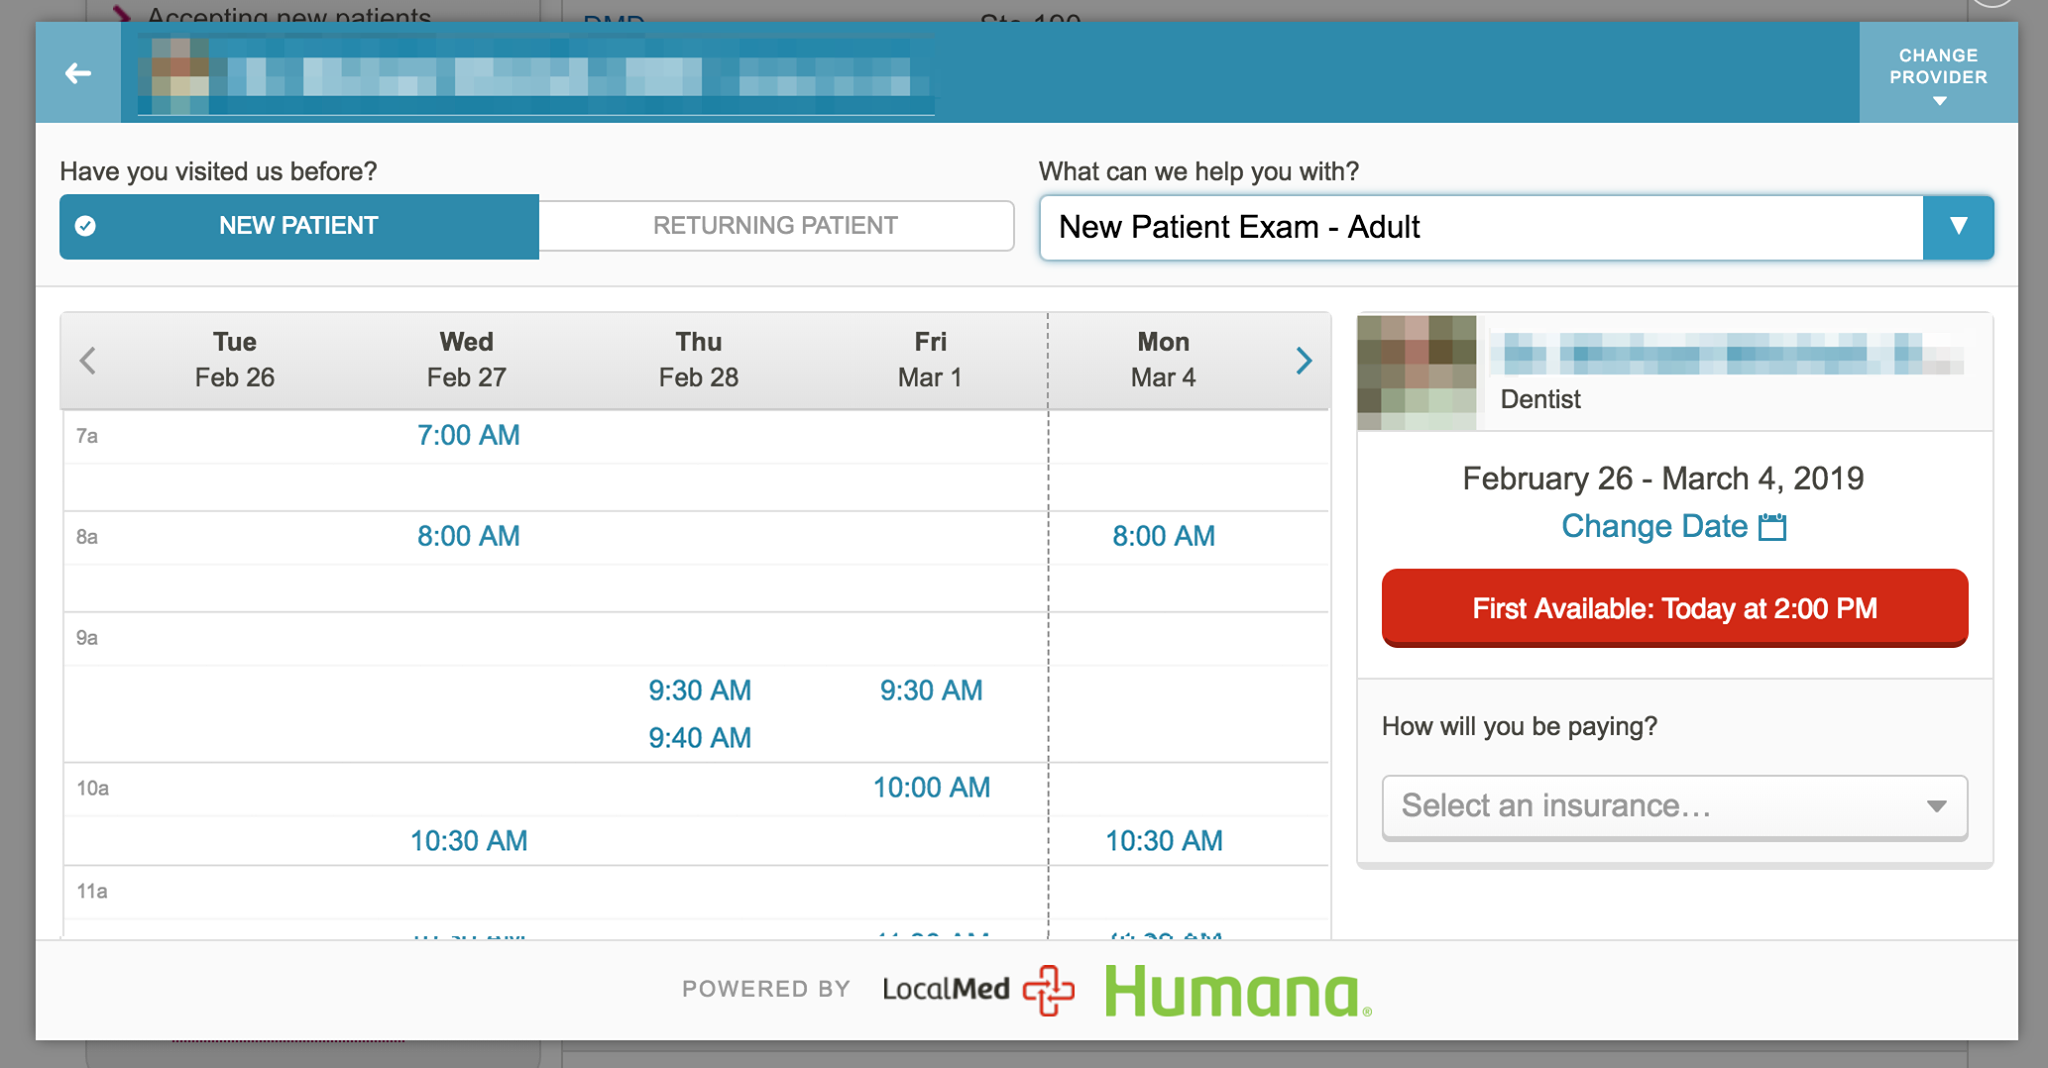 LocalMed, LLC Partners With Humana to Enable Seamless Dental Appointment Scheduling